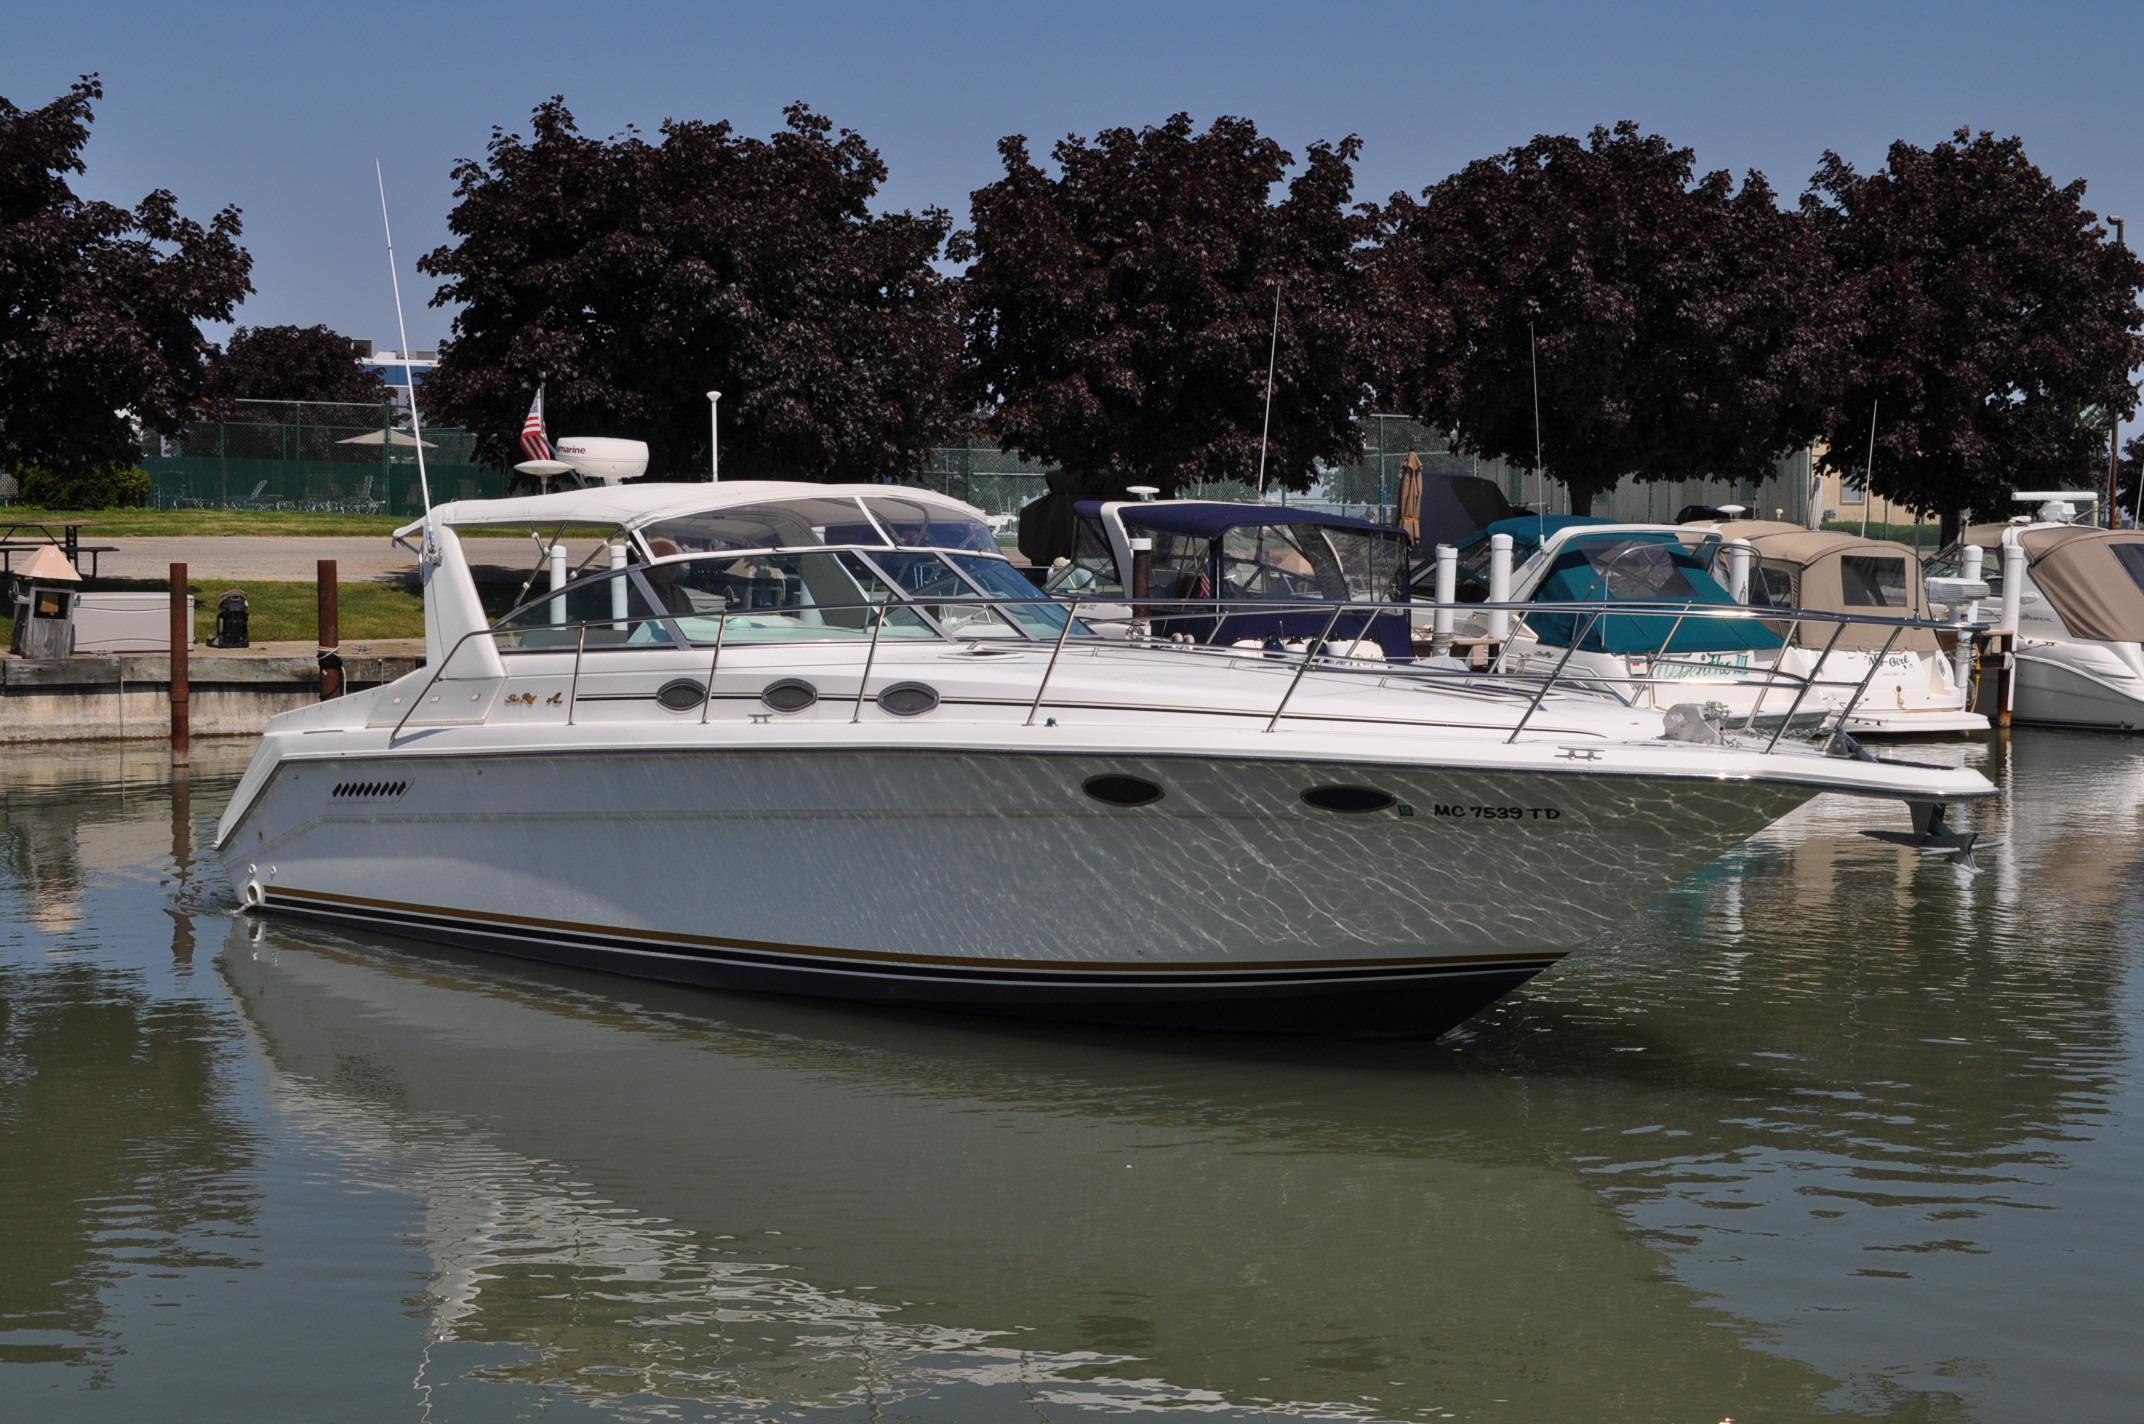 1995 Sea Ray 370 Express Cruiser Power Boat For Sale Www Yachtworld Com